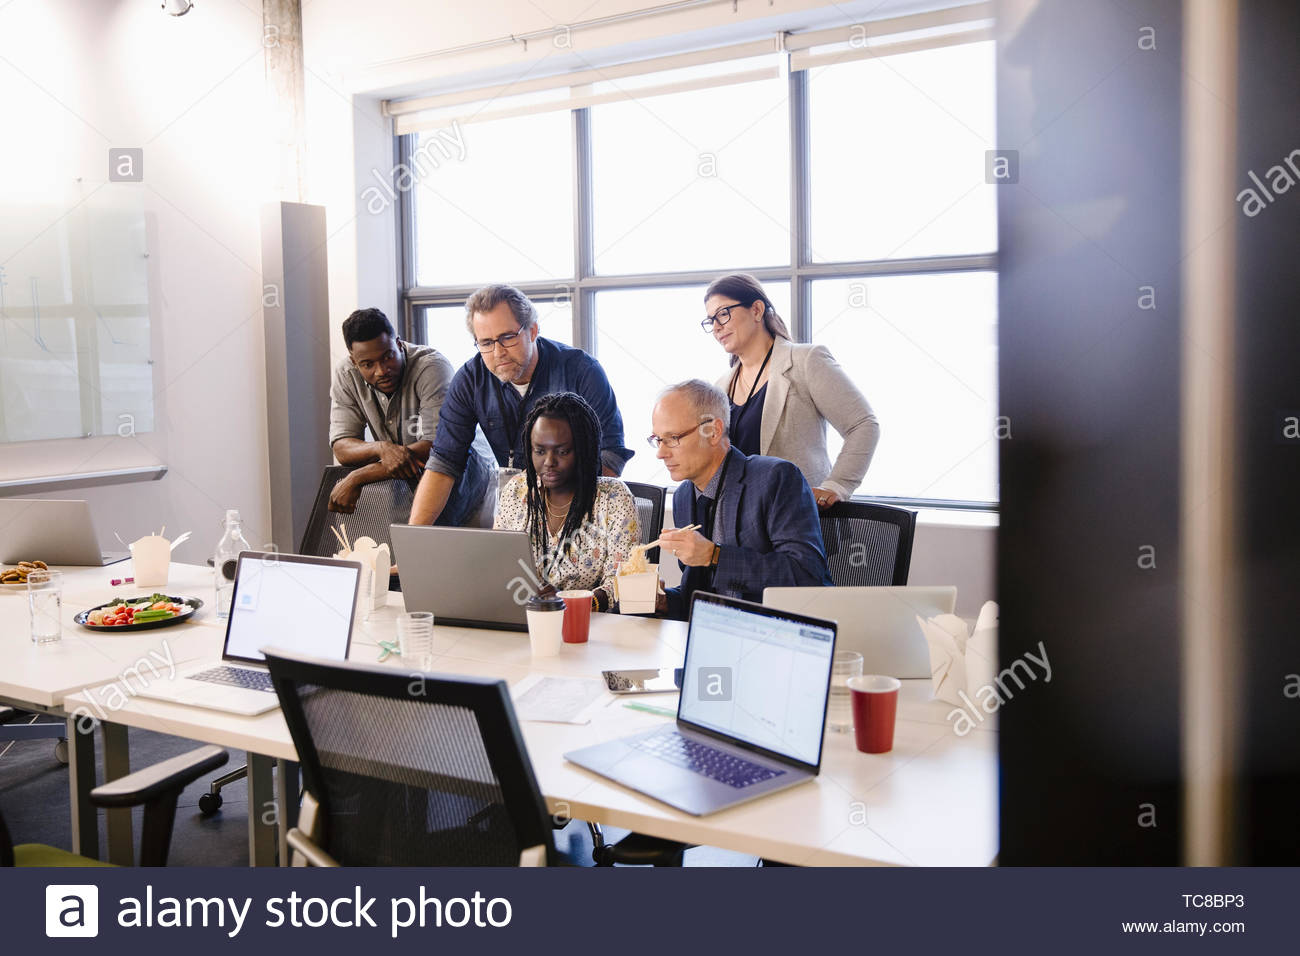 Business people working at laptop and eating take out lunch